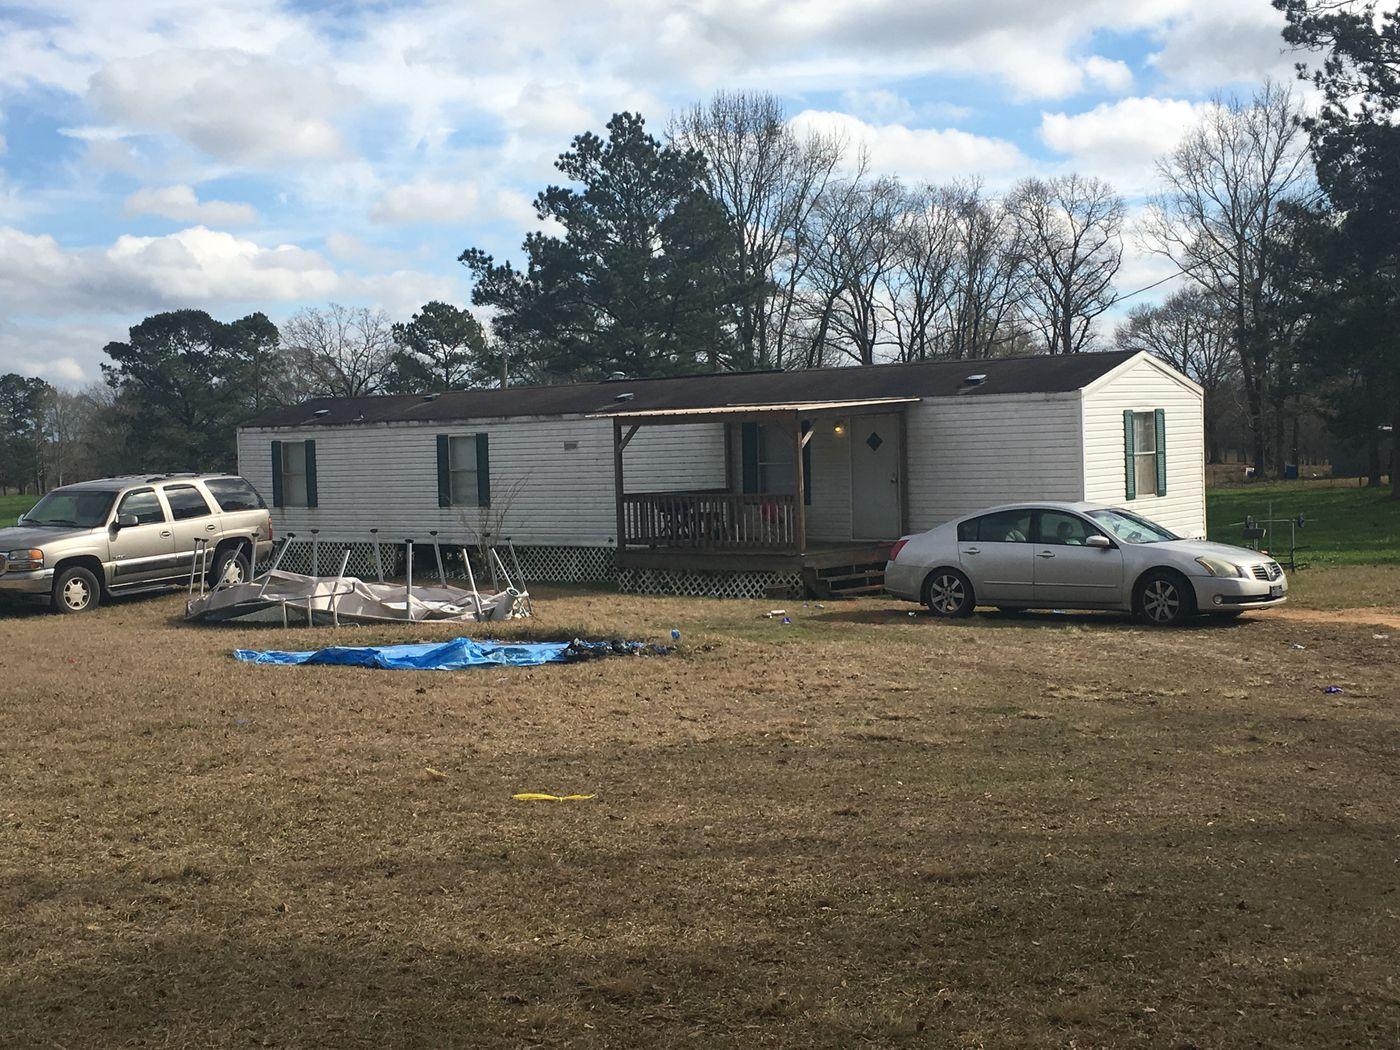 Pike County deputies were called to the home of 32-year-old Erica Hall on a disturbance call before she was murdered. Source: WLBT